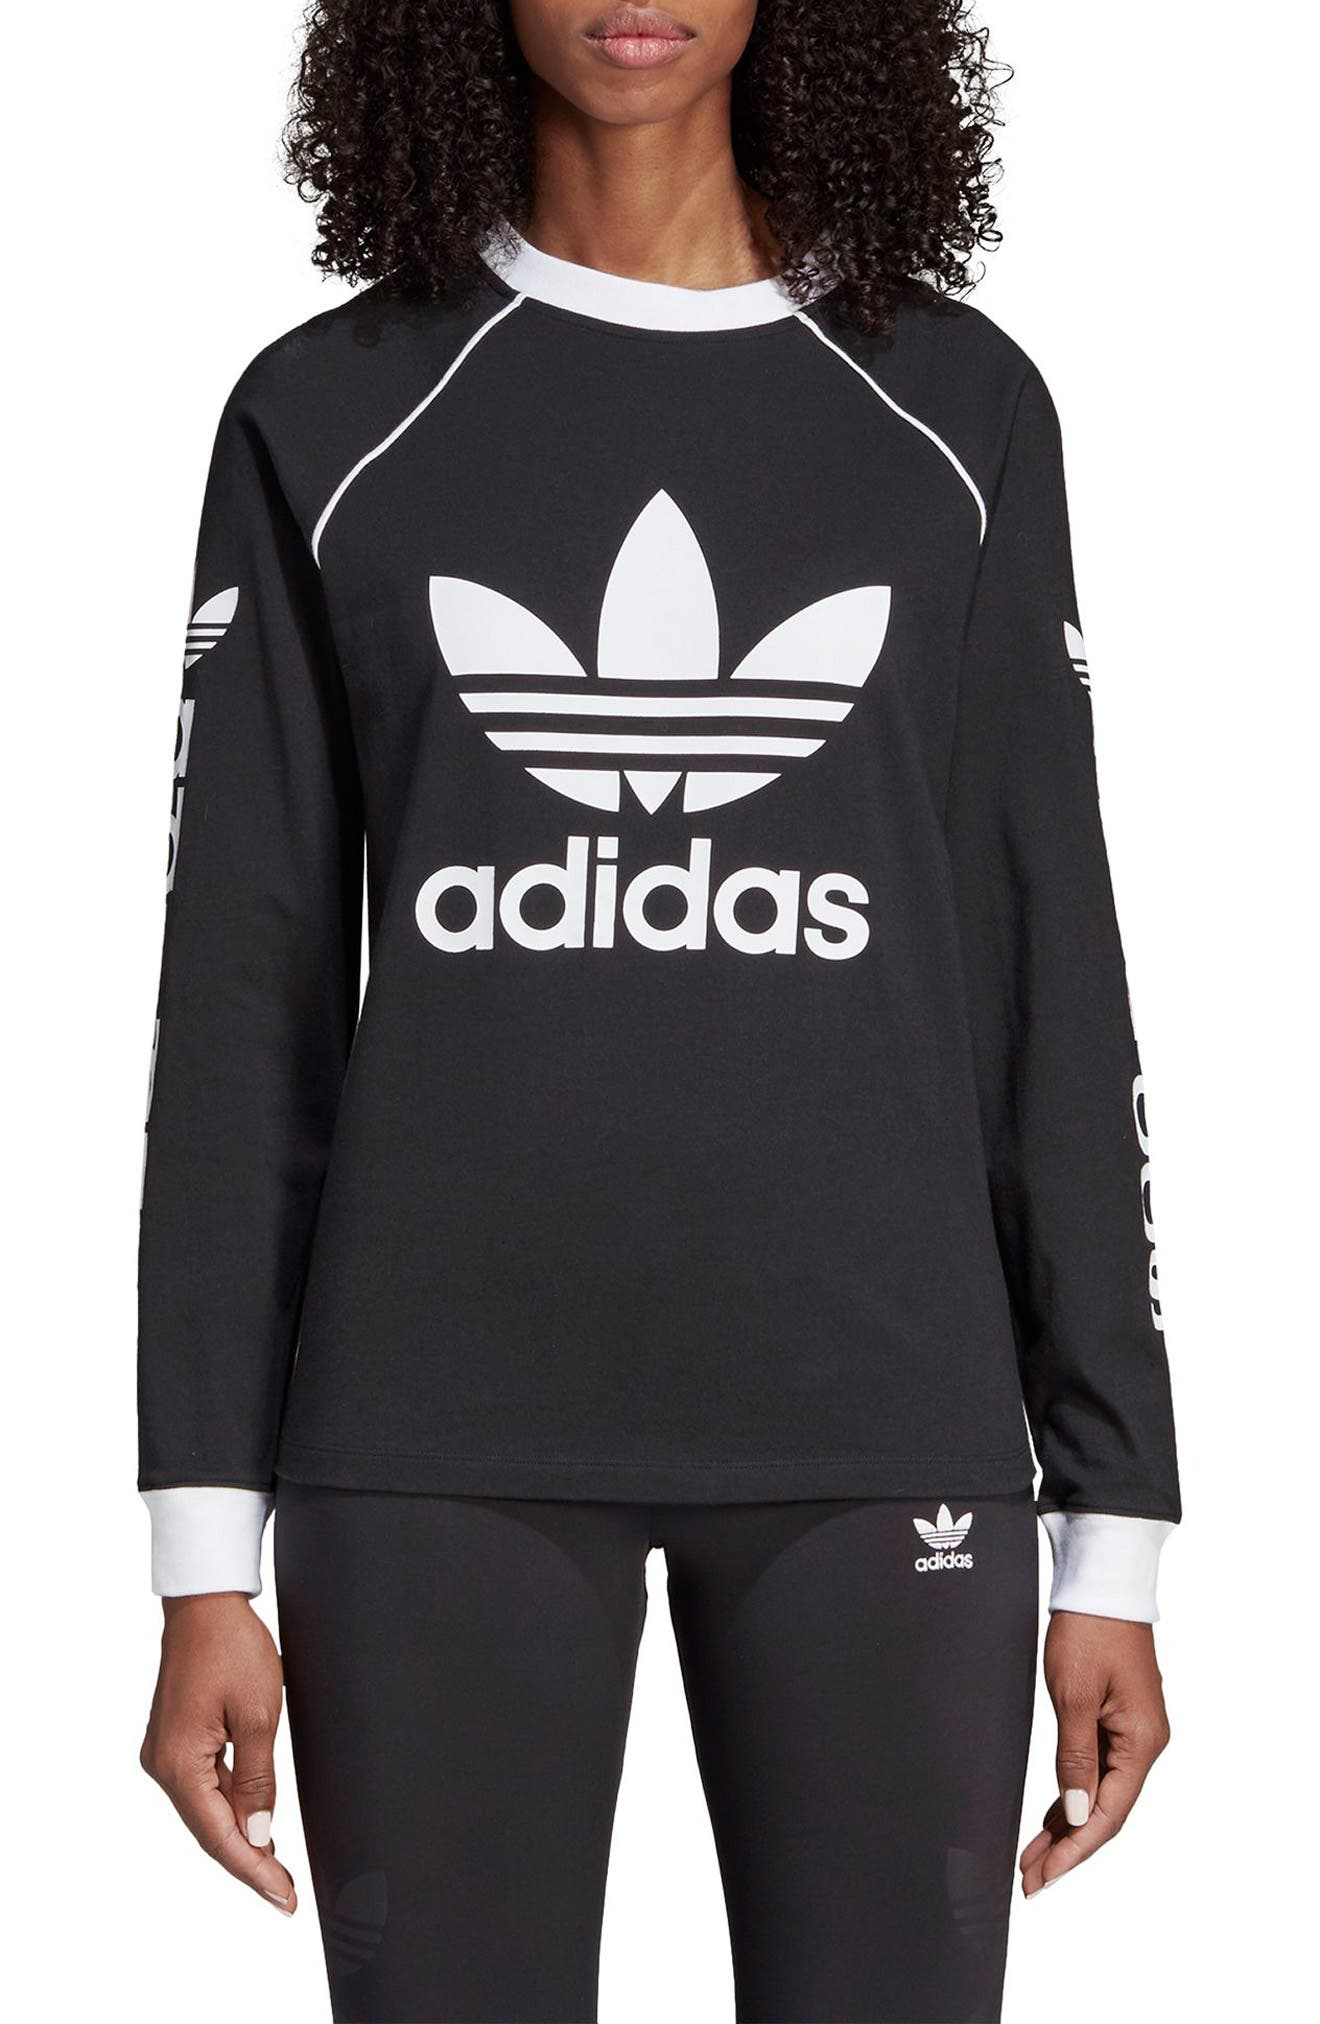 bda0595b Women's Adidas Originals Tops | Nordstrom